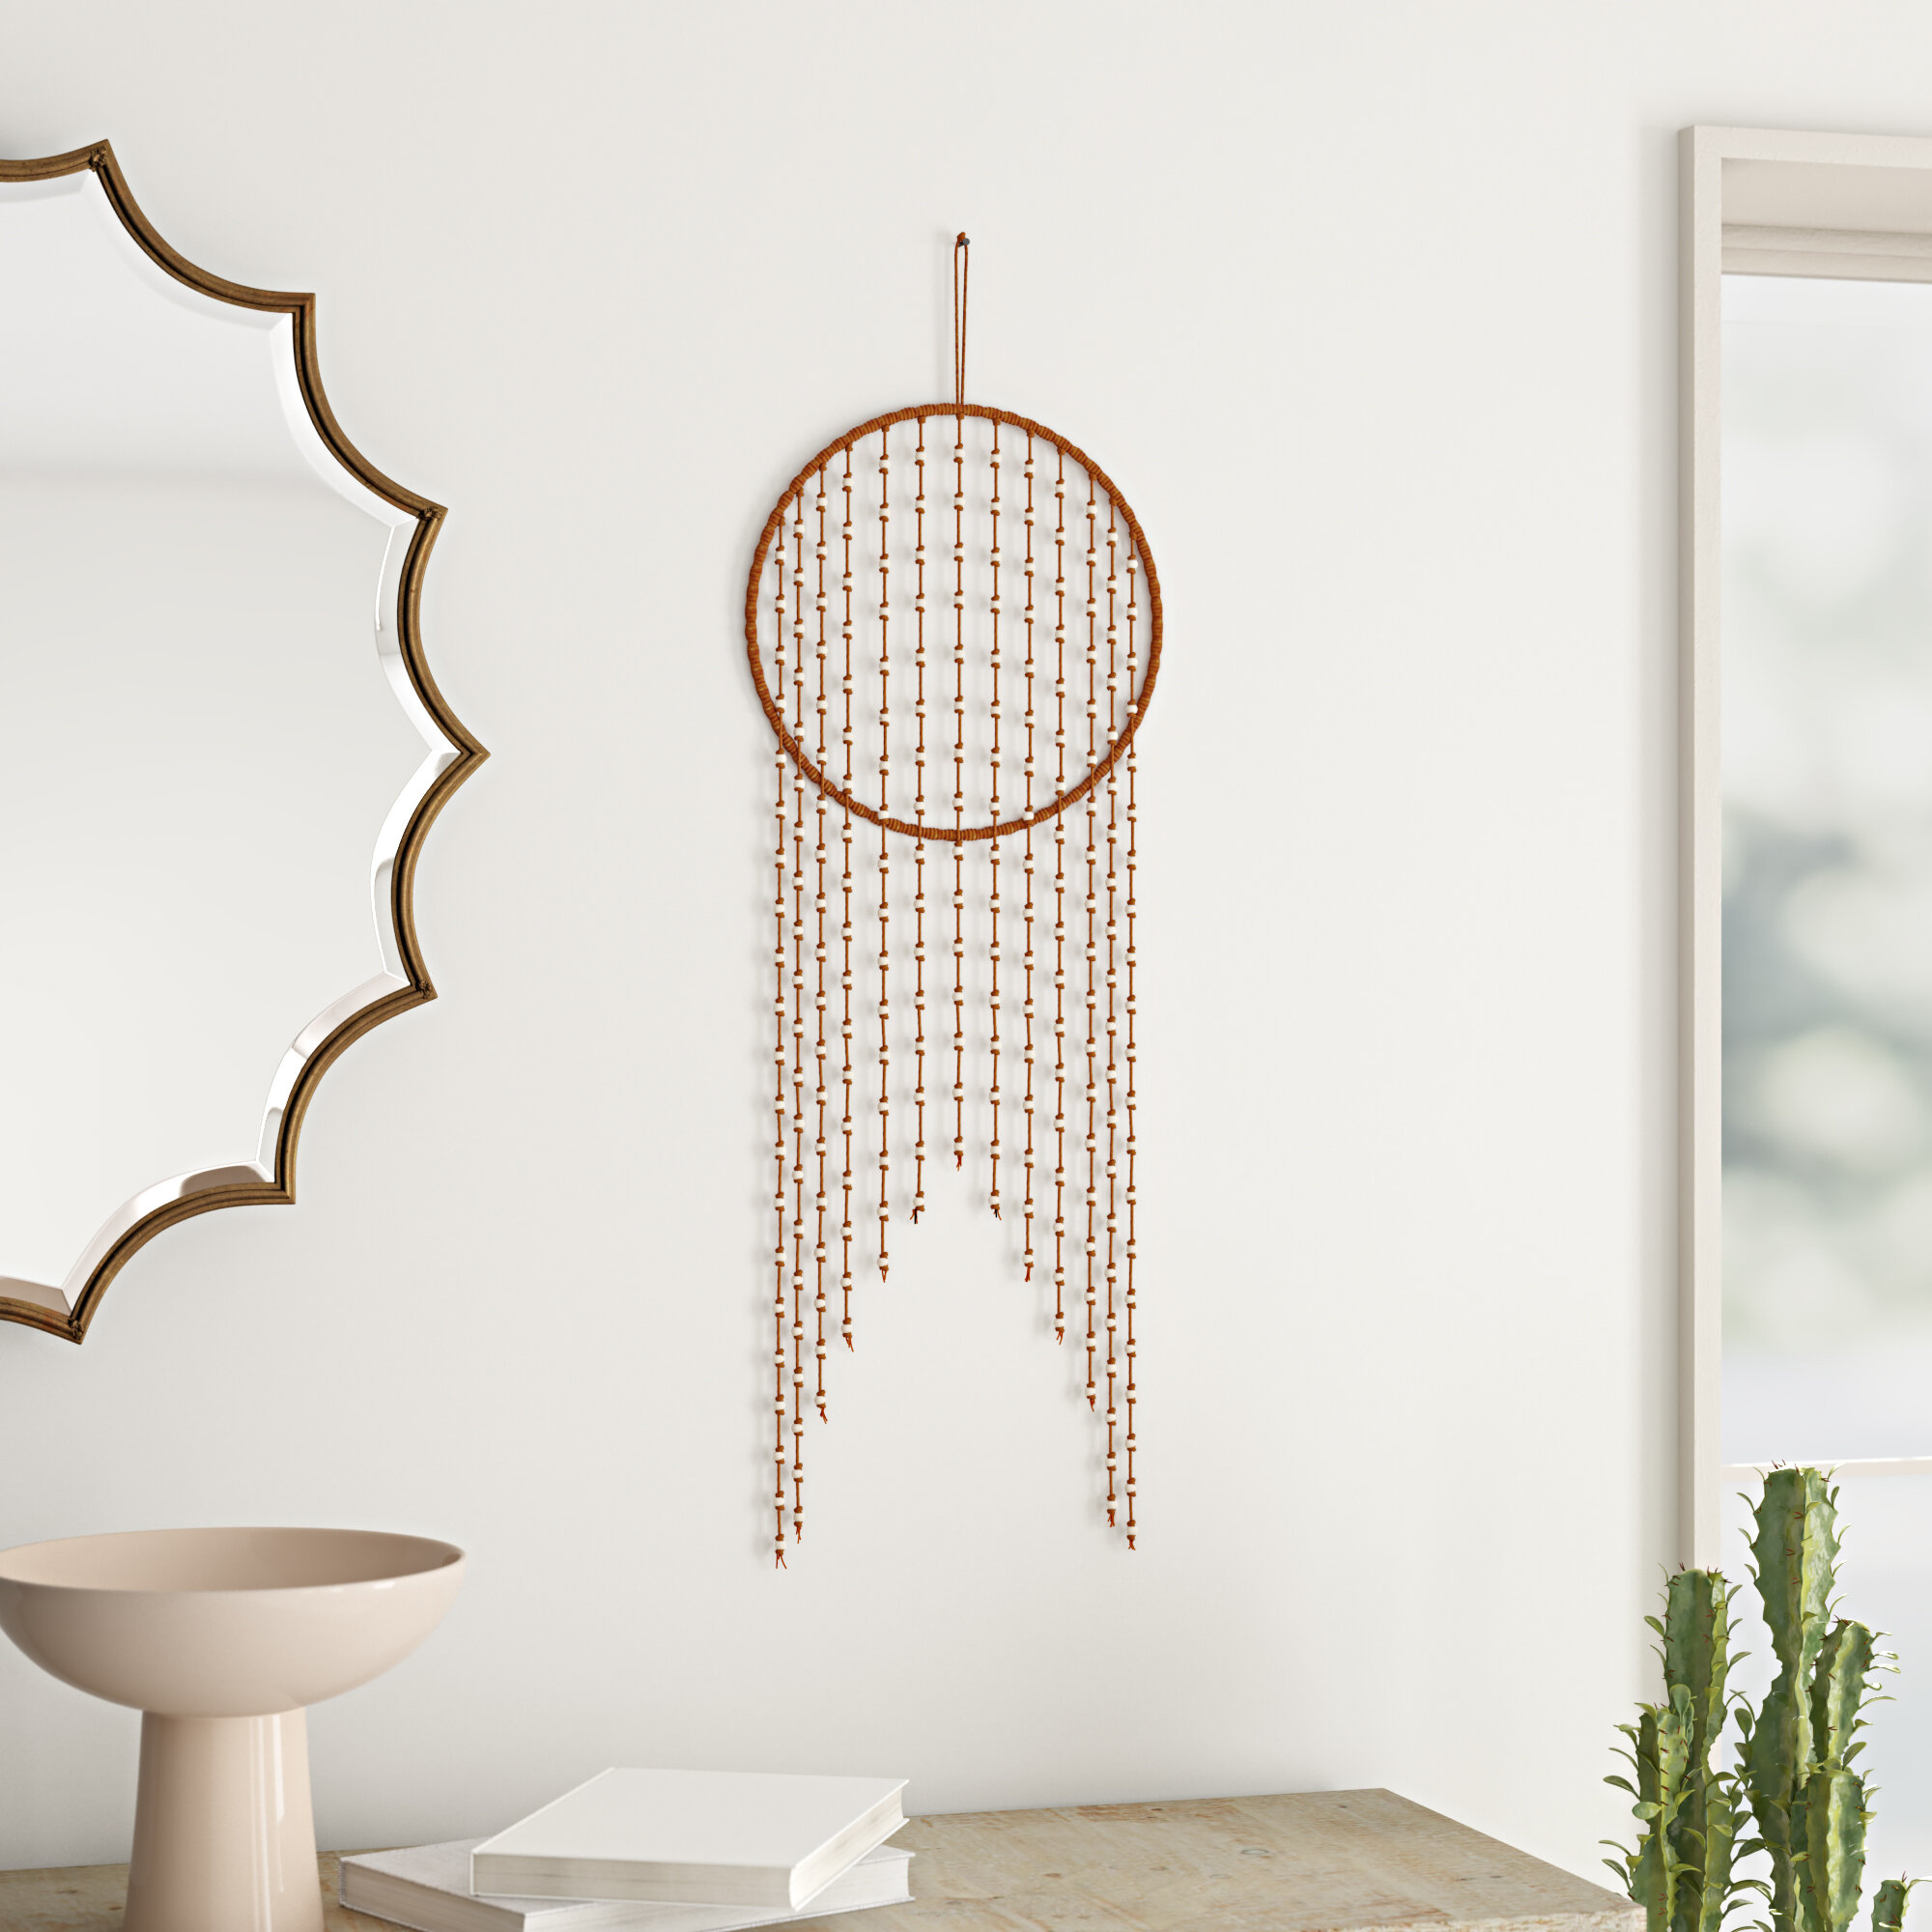 Wall Hanging Macrame | Free Shipping Over $35 | Wayfair For Current Blended Fabric Saber Wall Hangings With Rod (View 13 of 20)